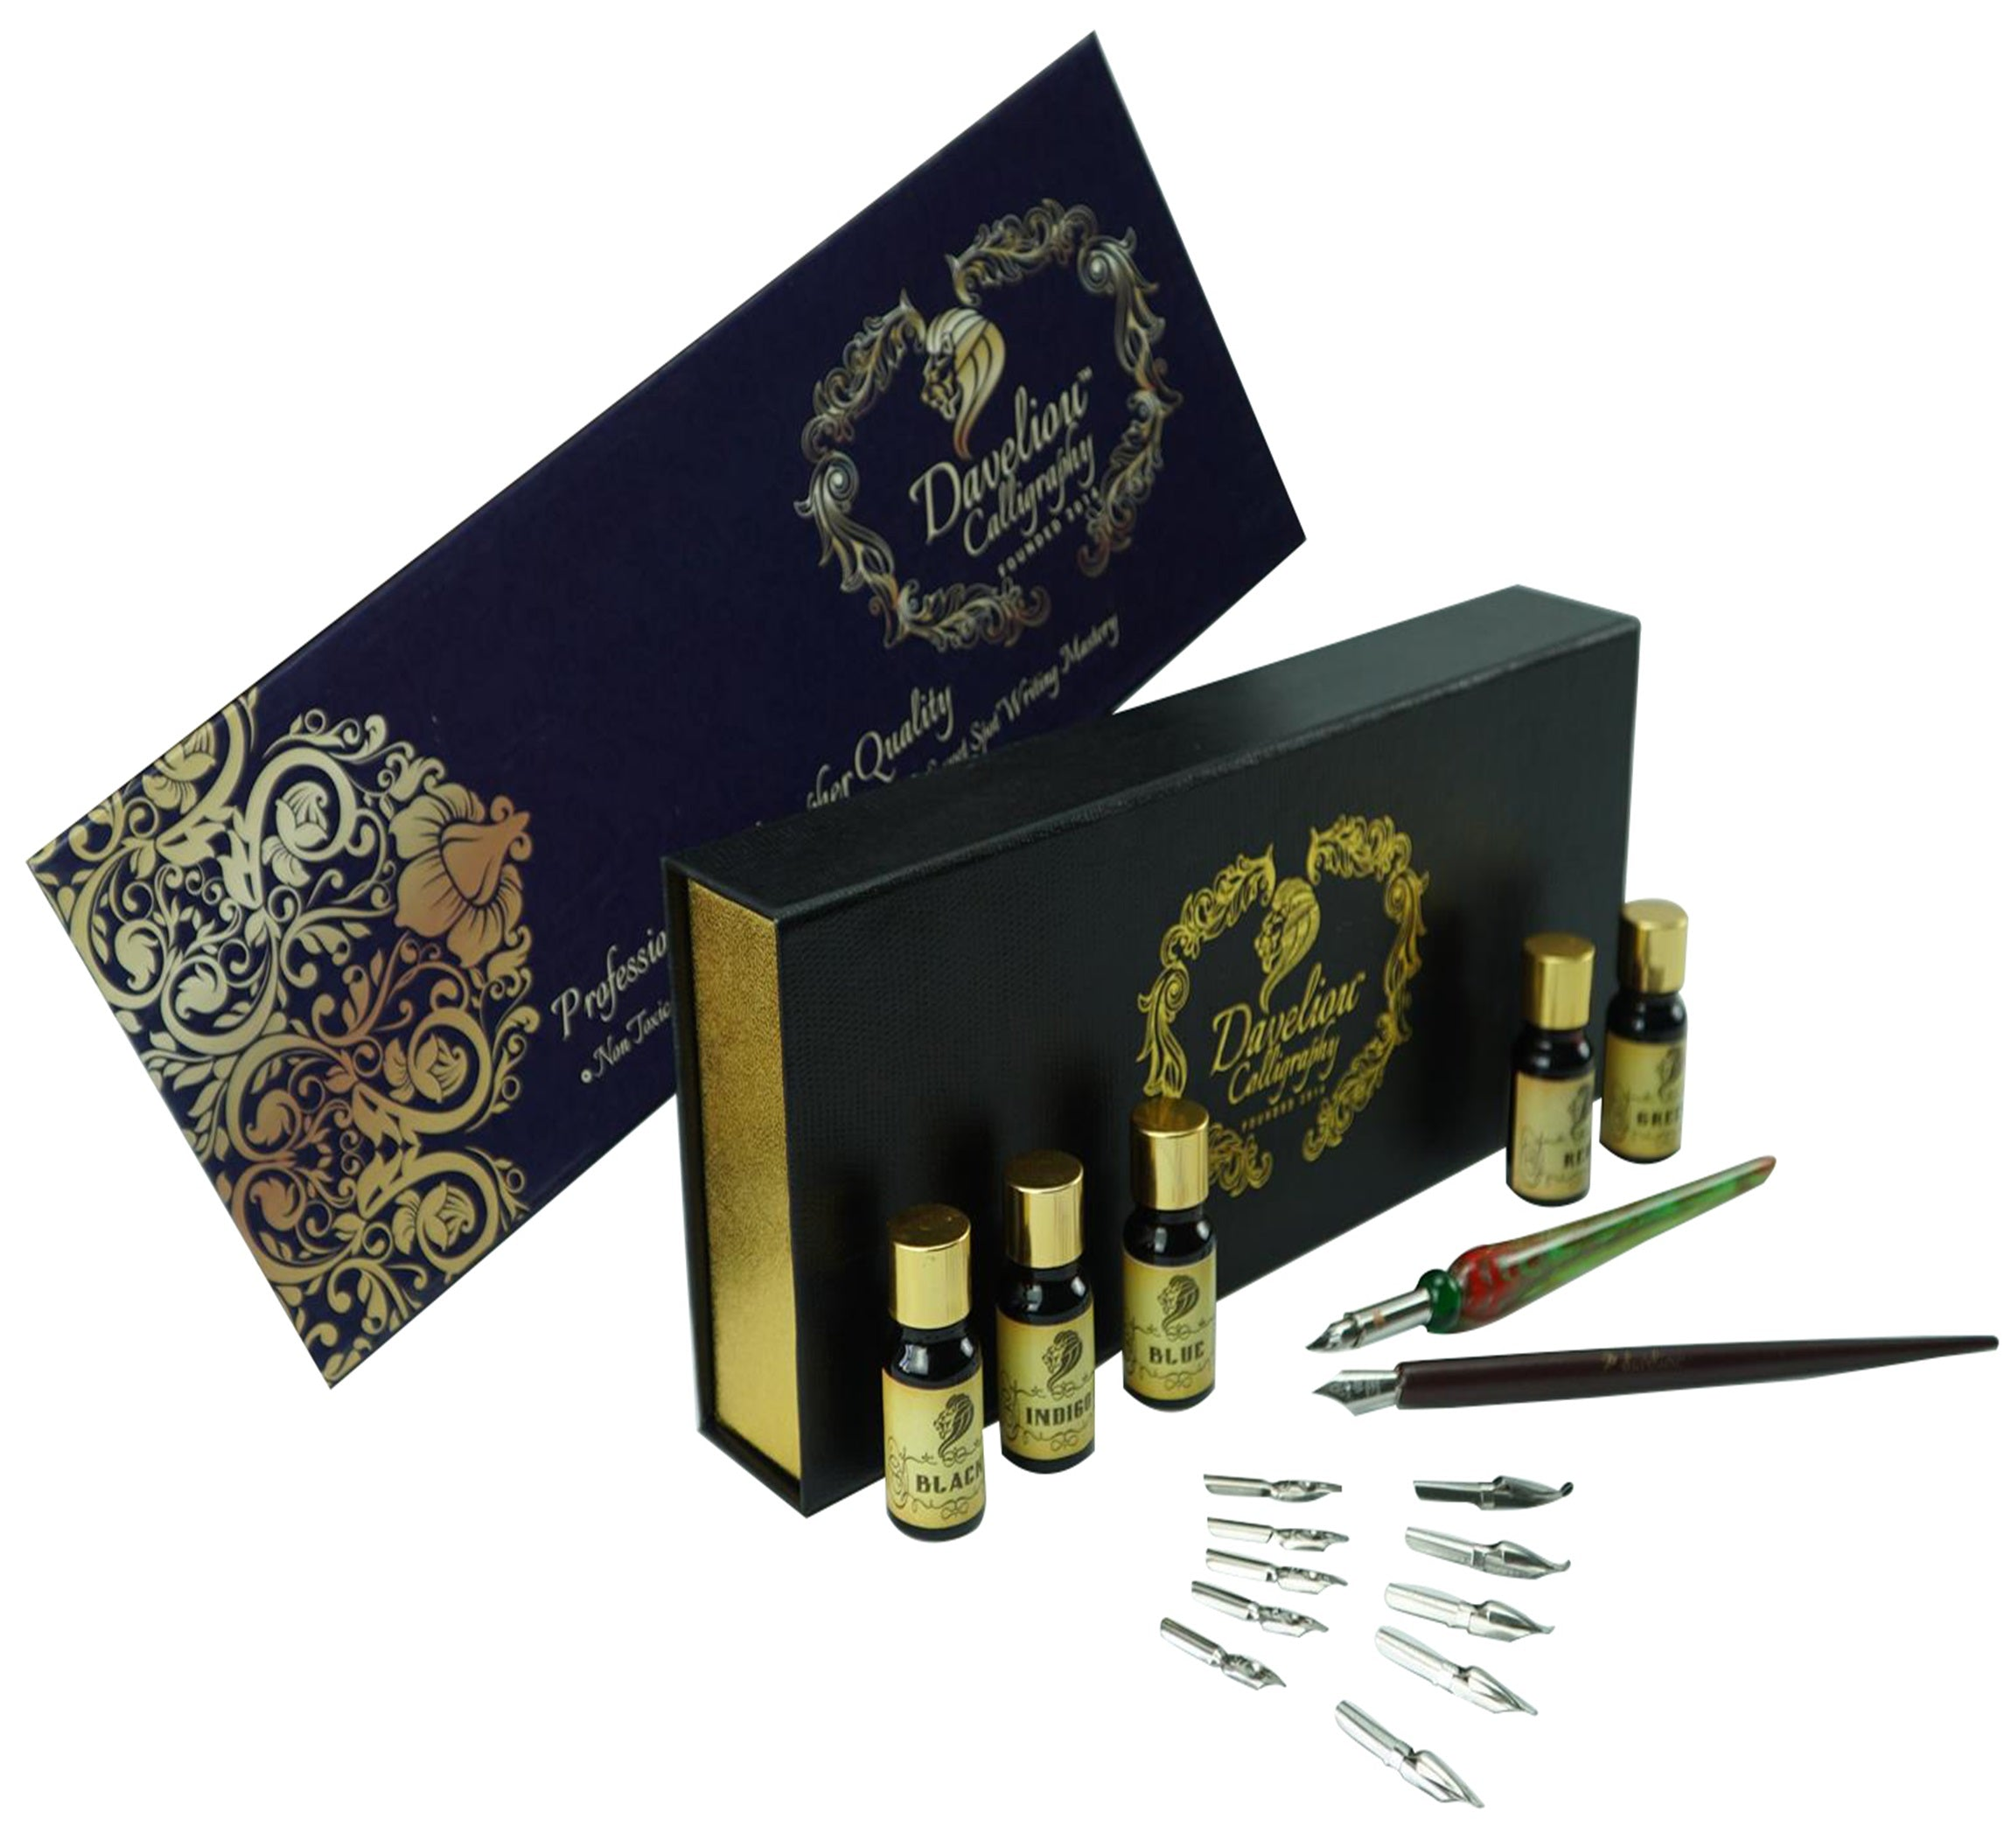 Daveliou™ Calligraphy Pen Set